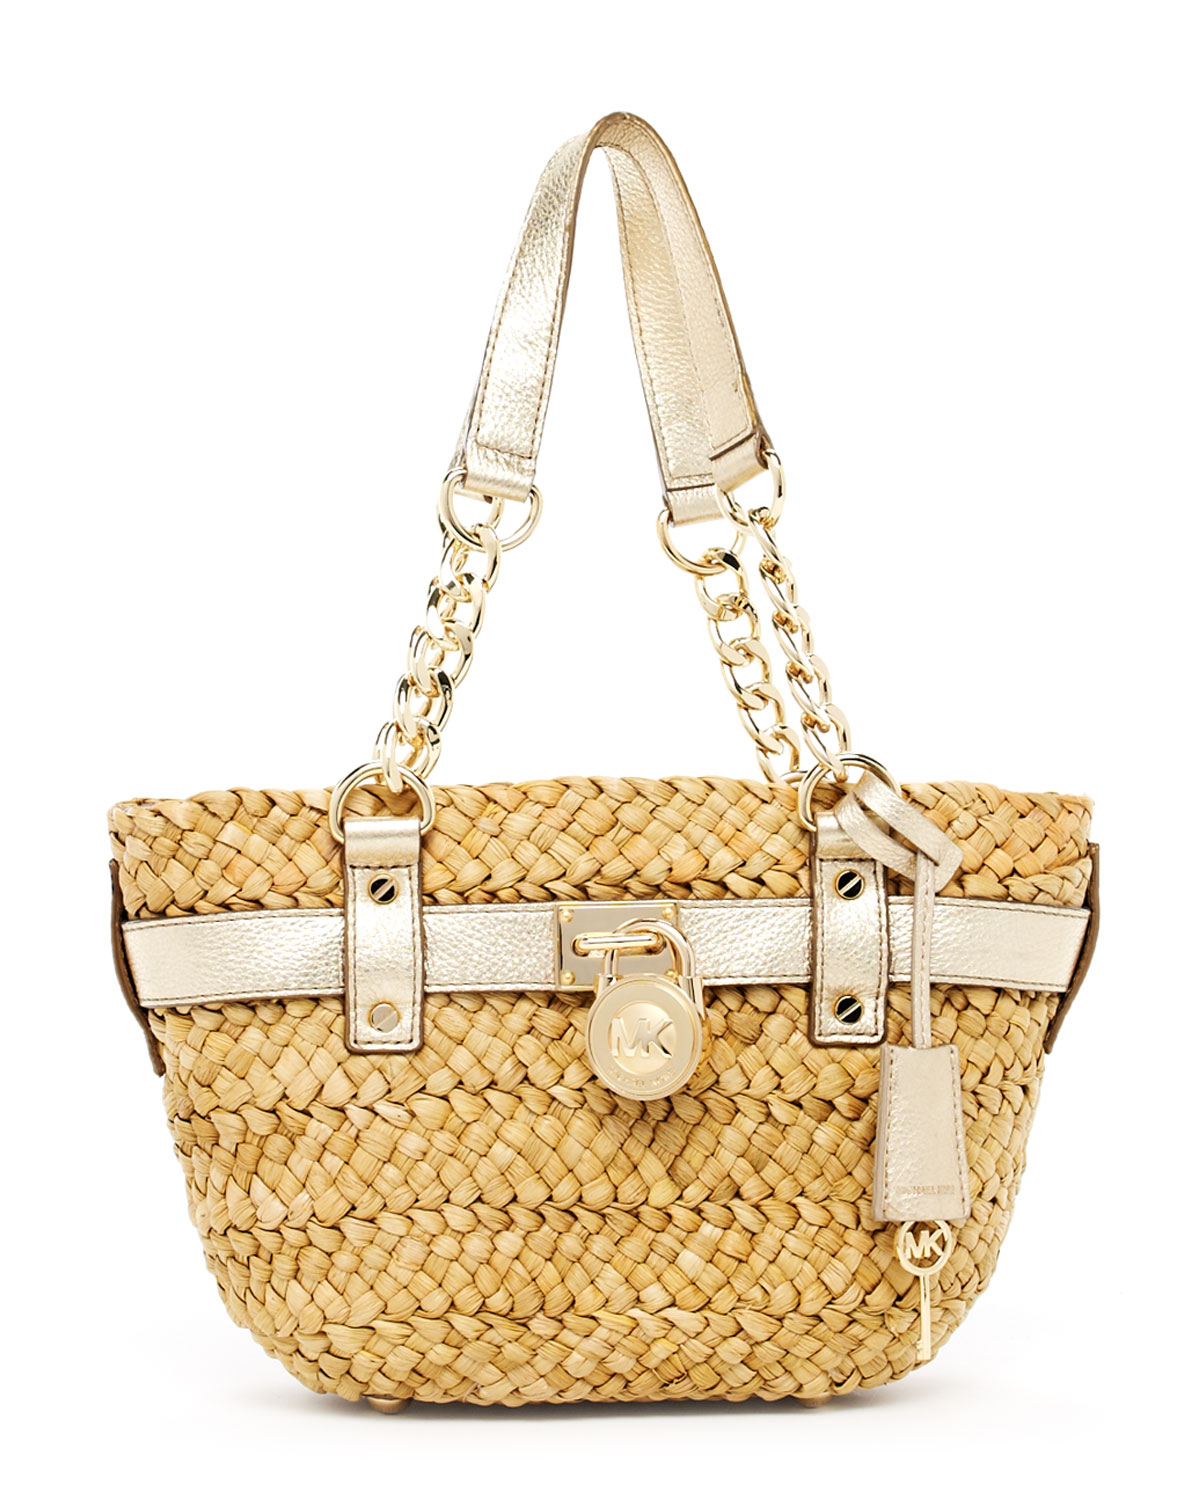 a72f7ec287d98 Lyst - Michael Kors Hamilton Medium Straw Tote Pale Gold in Natural